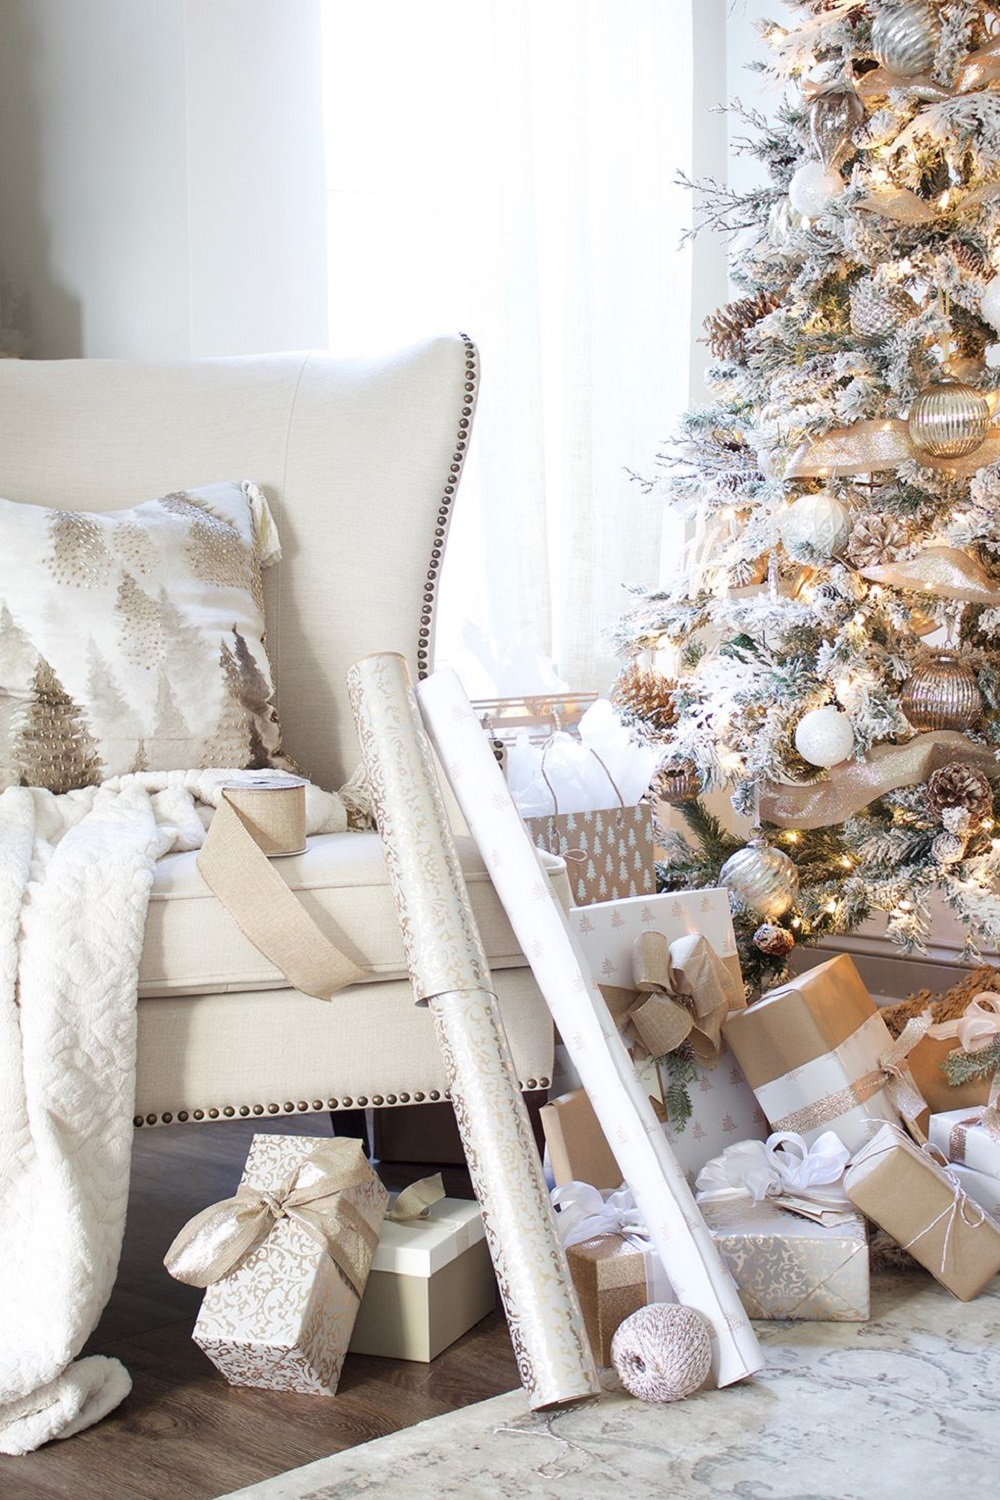 t4-2 ​​Ideas for modern Christmas decorations that are heartwarming